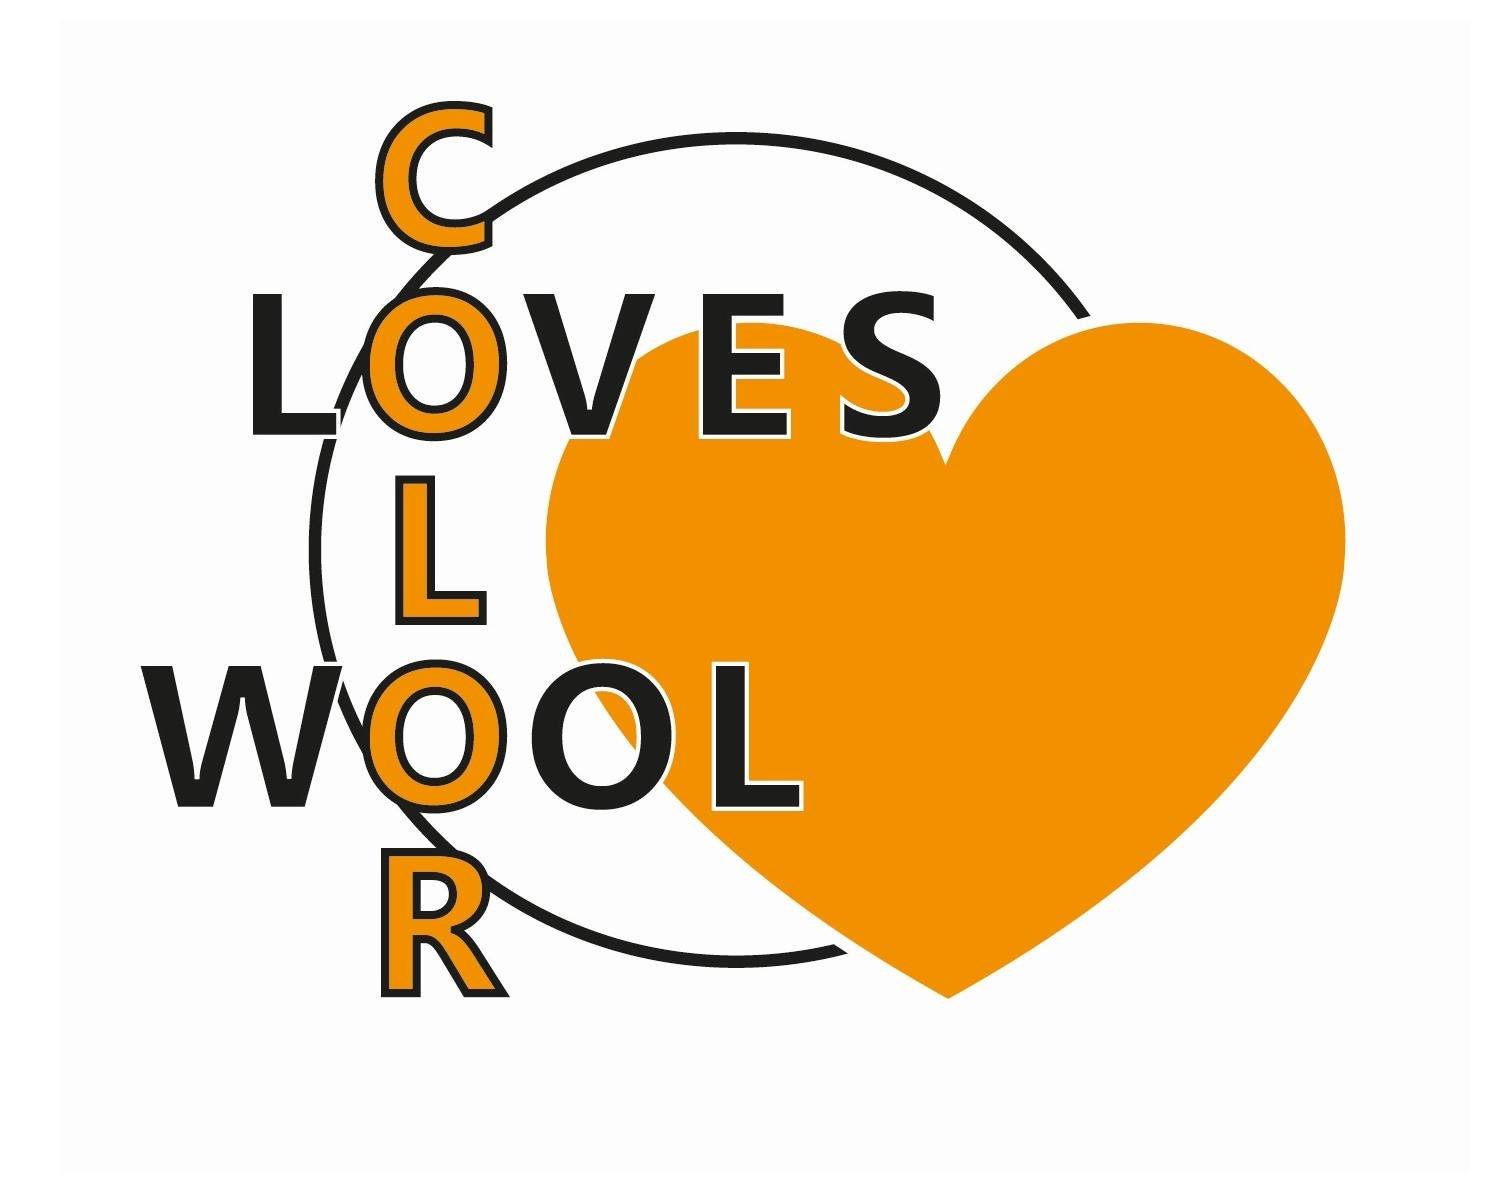 Color*loves*wool